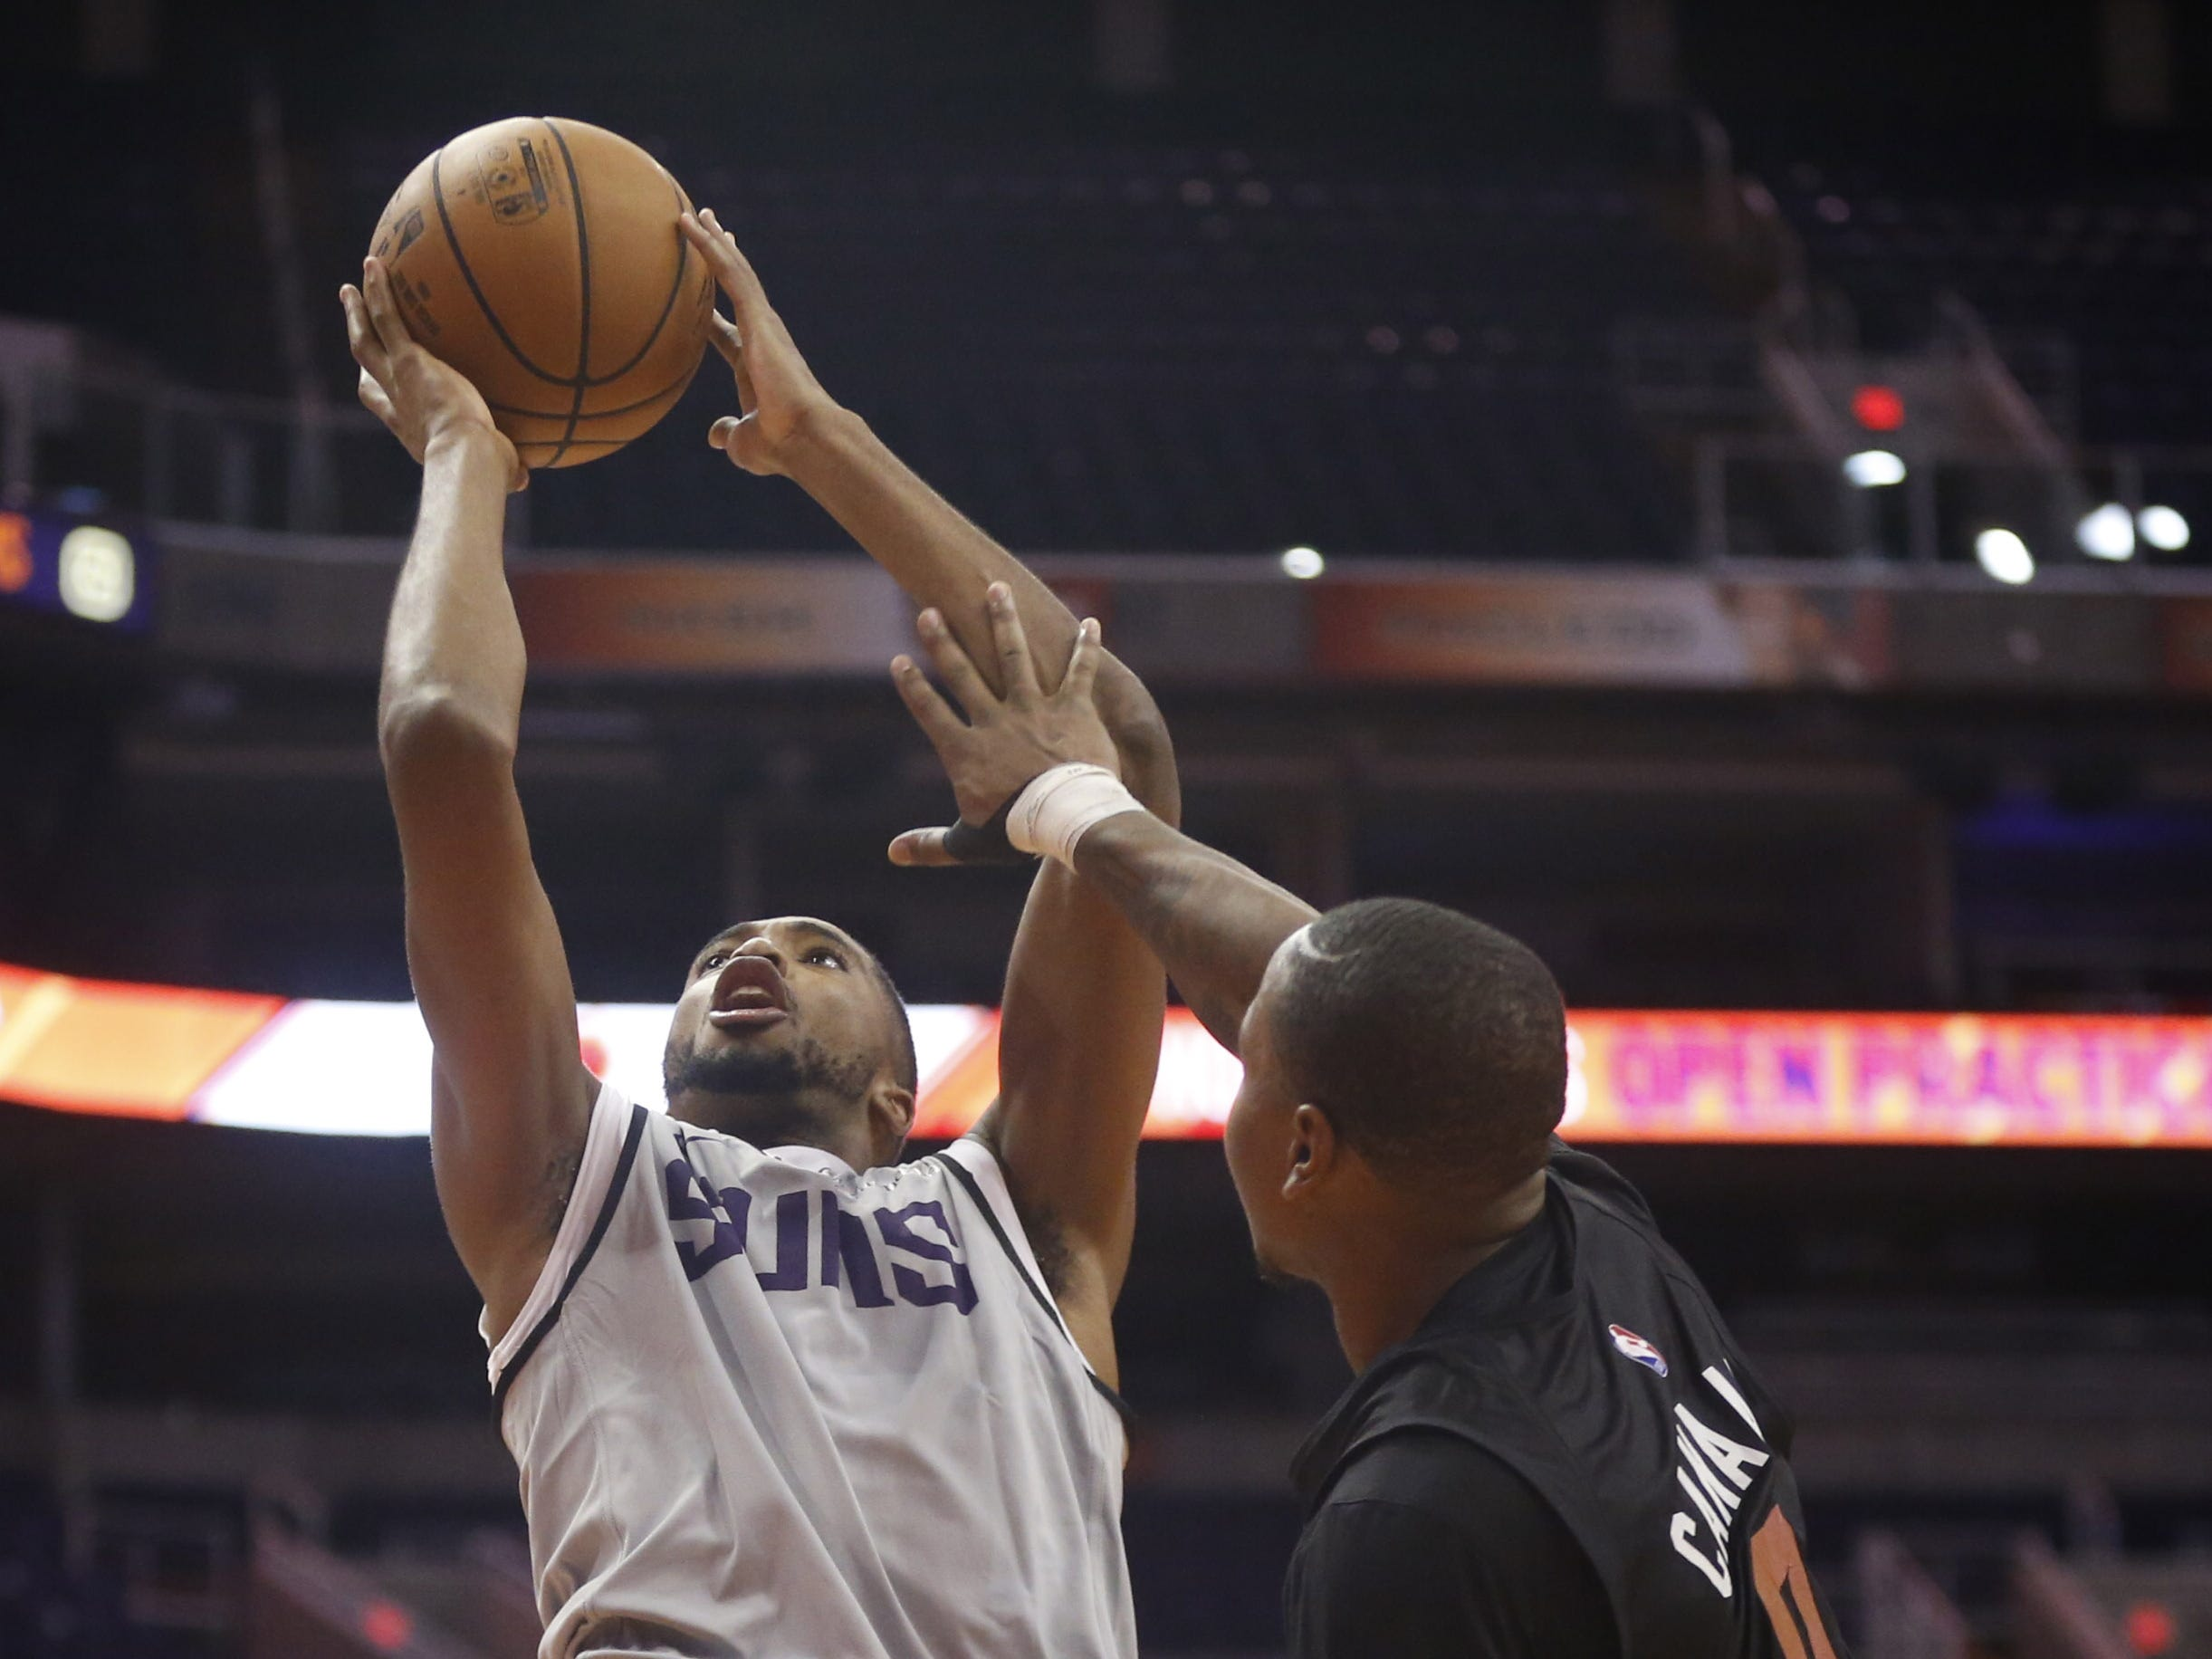 Suns Mikal Bridges shoots over Isaiah Canaan during an Open Practice at Talking Stick Resort Arena in Phoenix, Ariz. on Sept. 29, 2018.